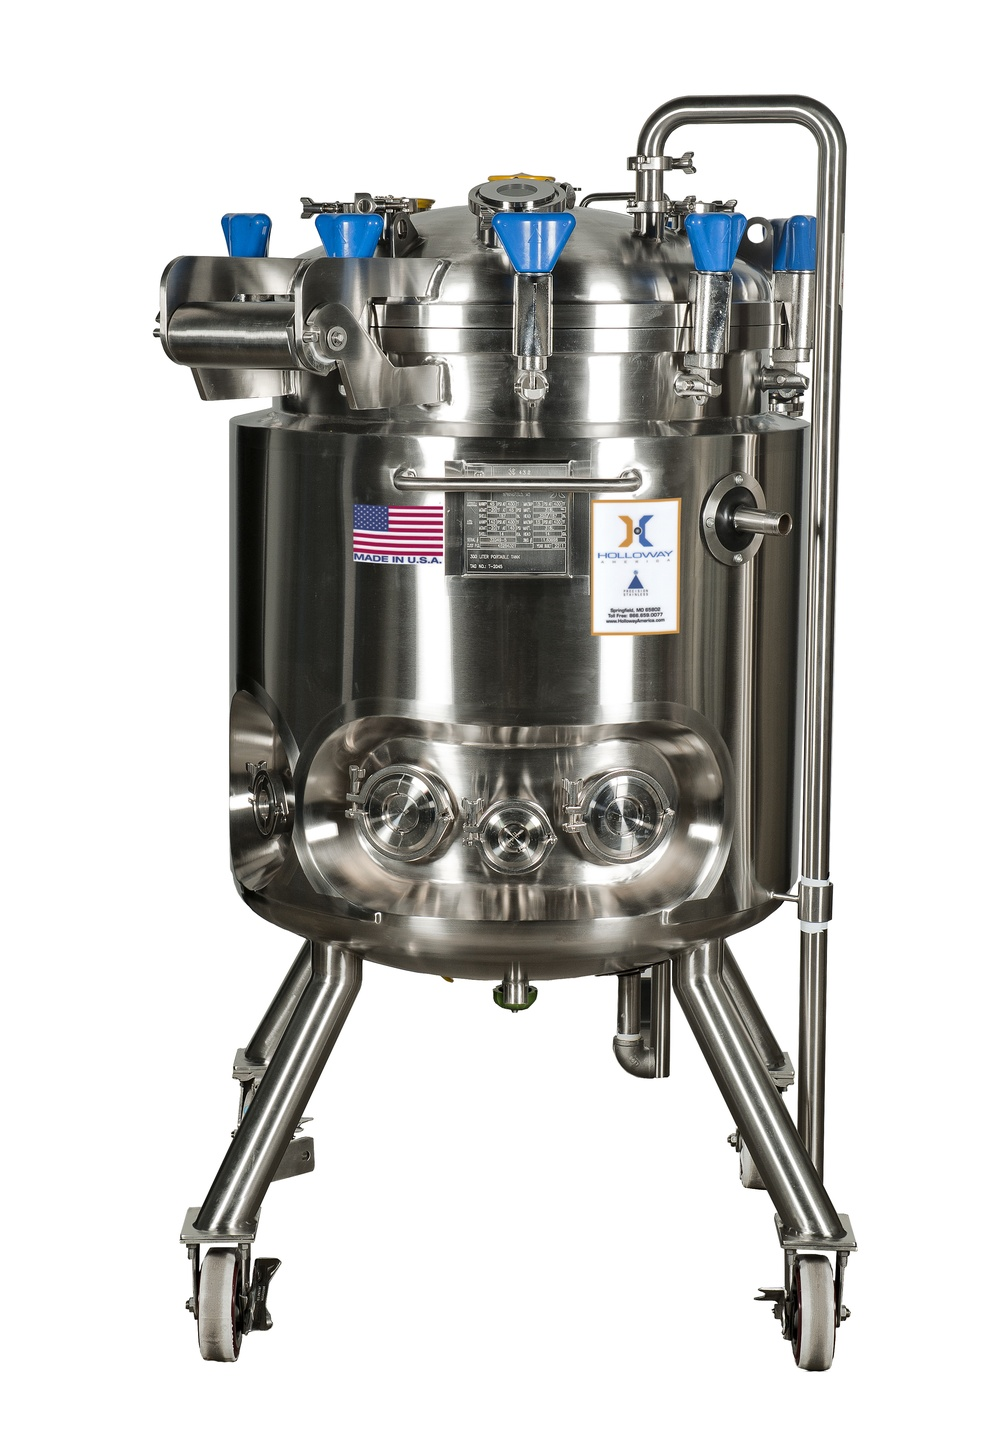 This vertical laboratory pressure vessel is portable.